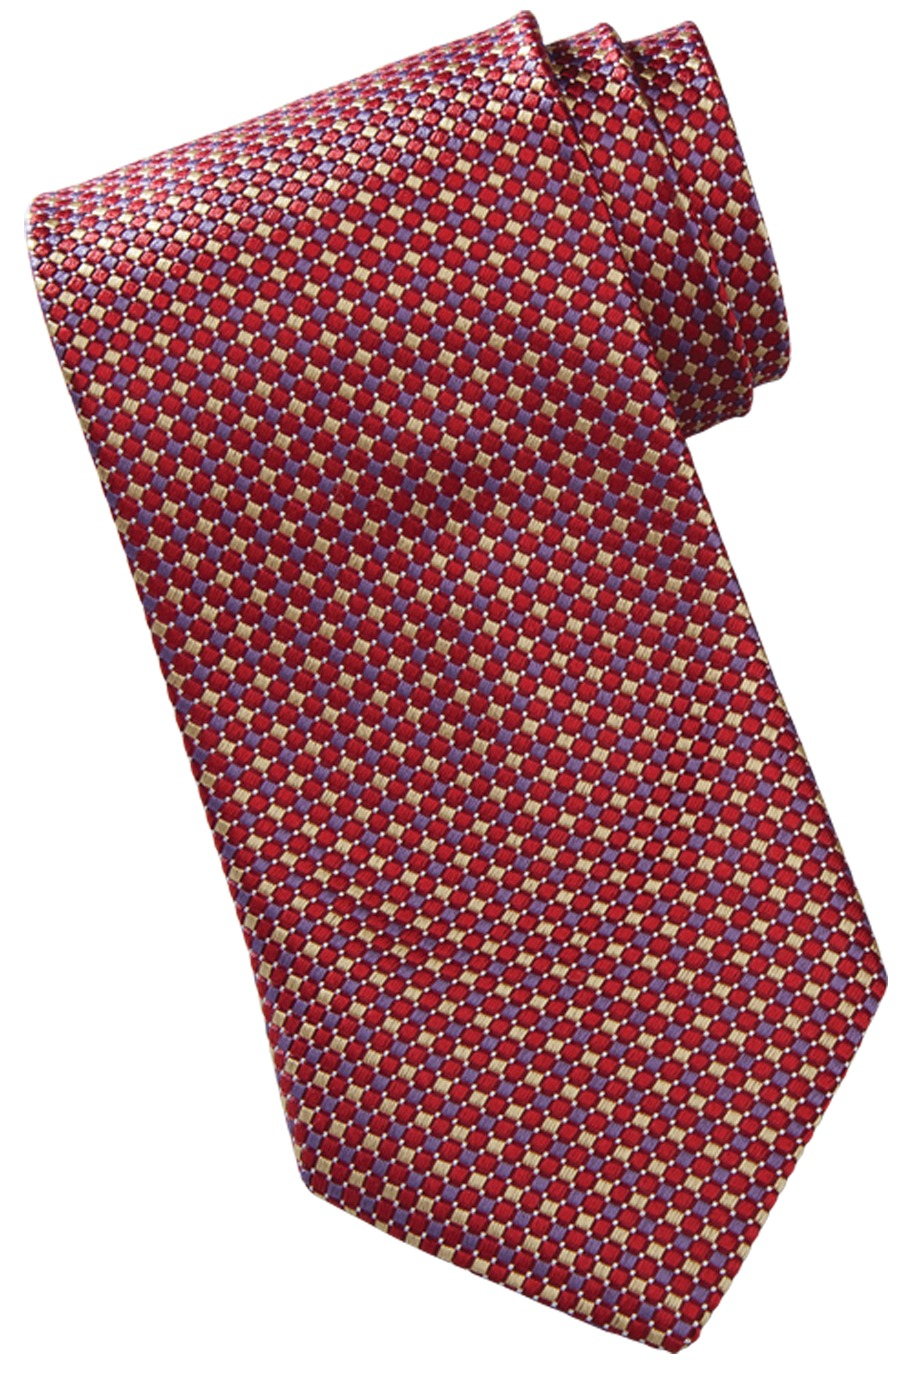 Edwards Garment MD00 - Men's Mini-Diamond Pattern Tie